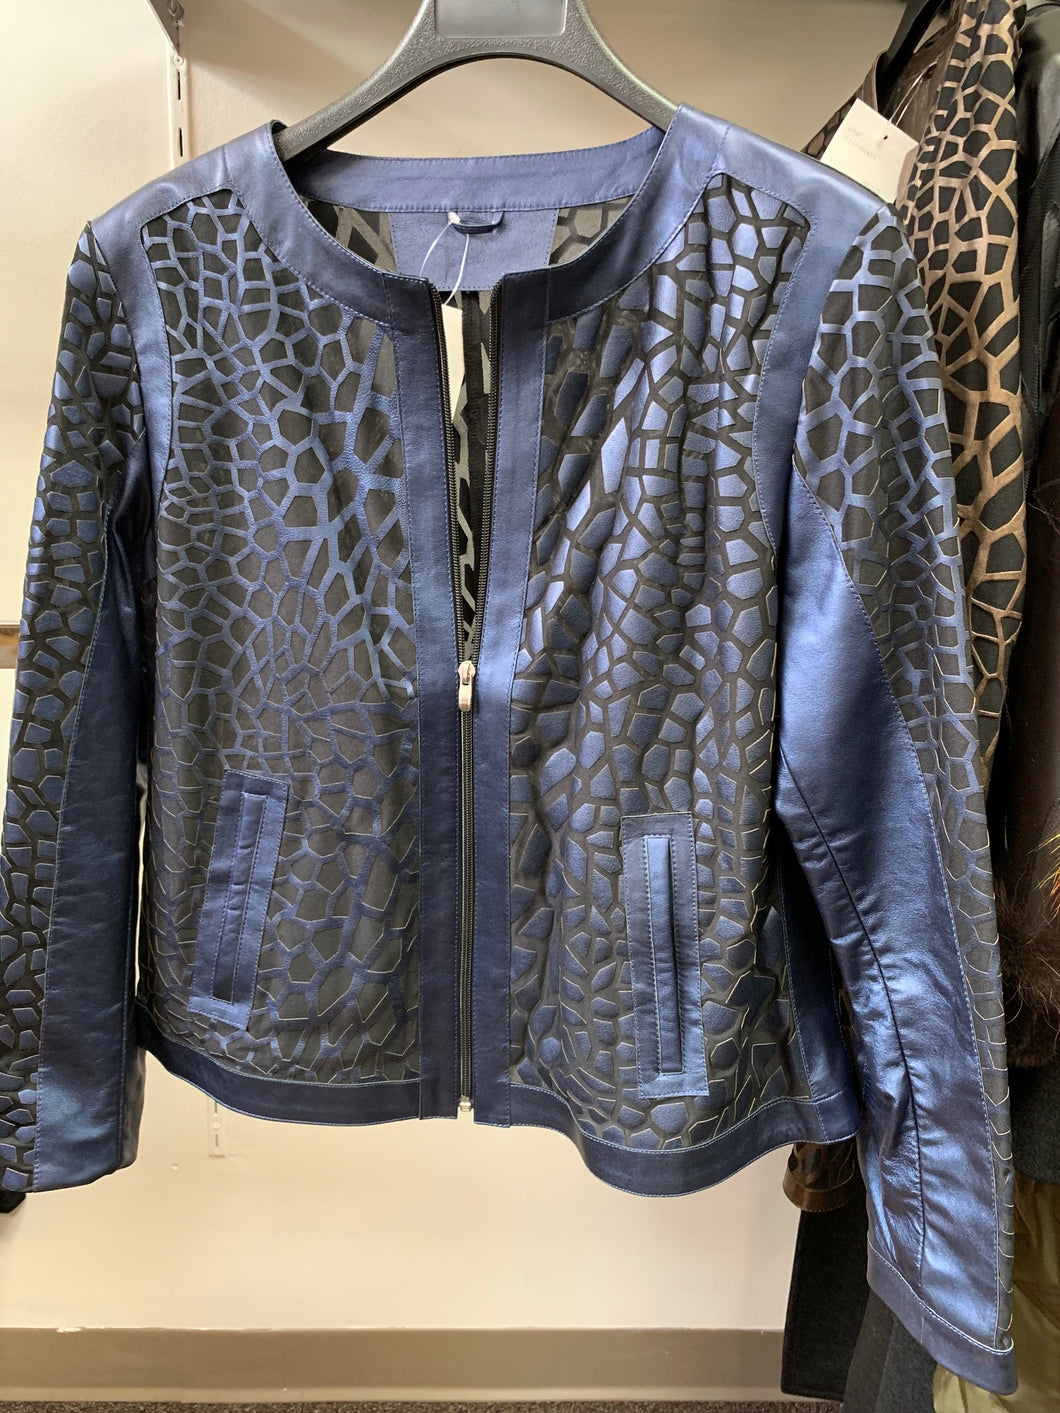 Metallic Blue Giraffe Pattern Leather and Tulle Jacket